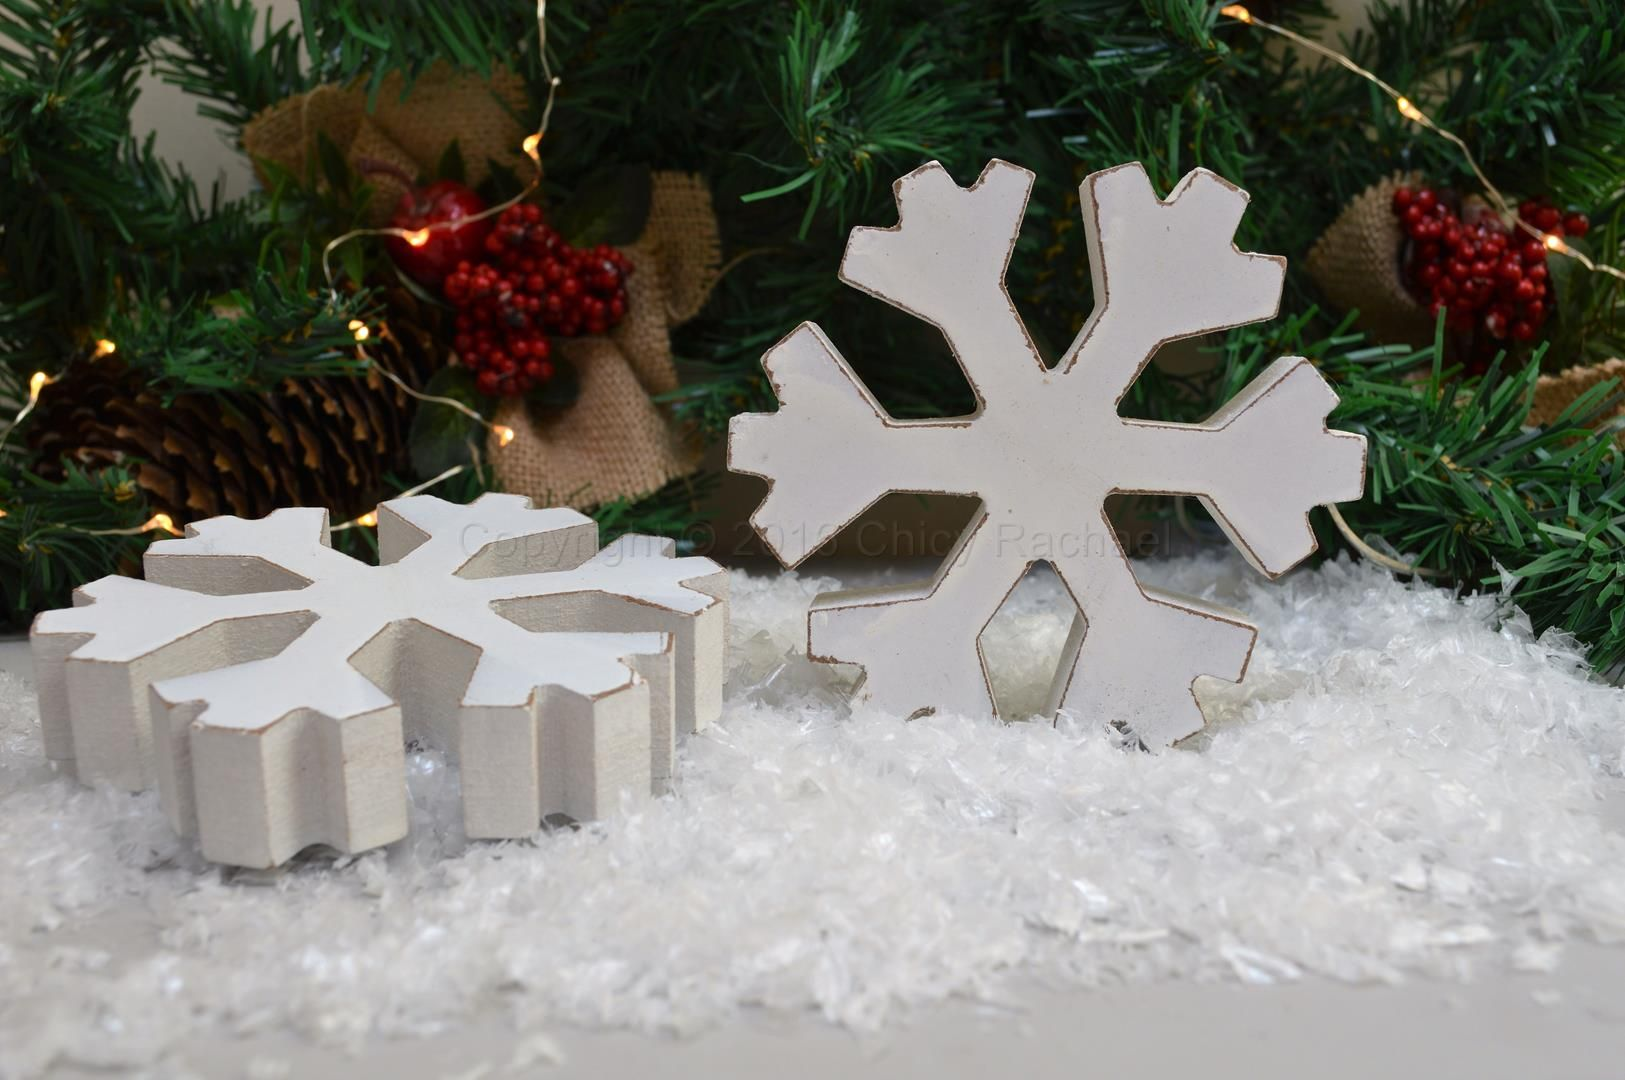 Pack of 3 Paper White Snowflakes Hanging Decoration Christmas Xmas Shabby Chic